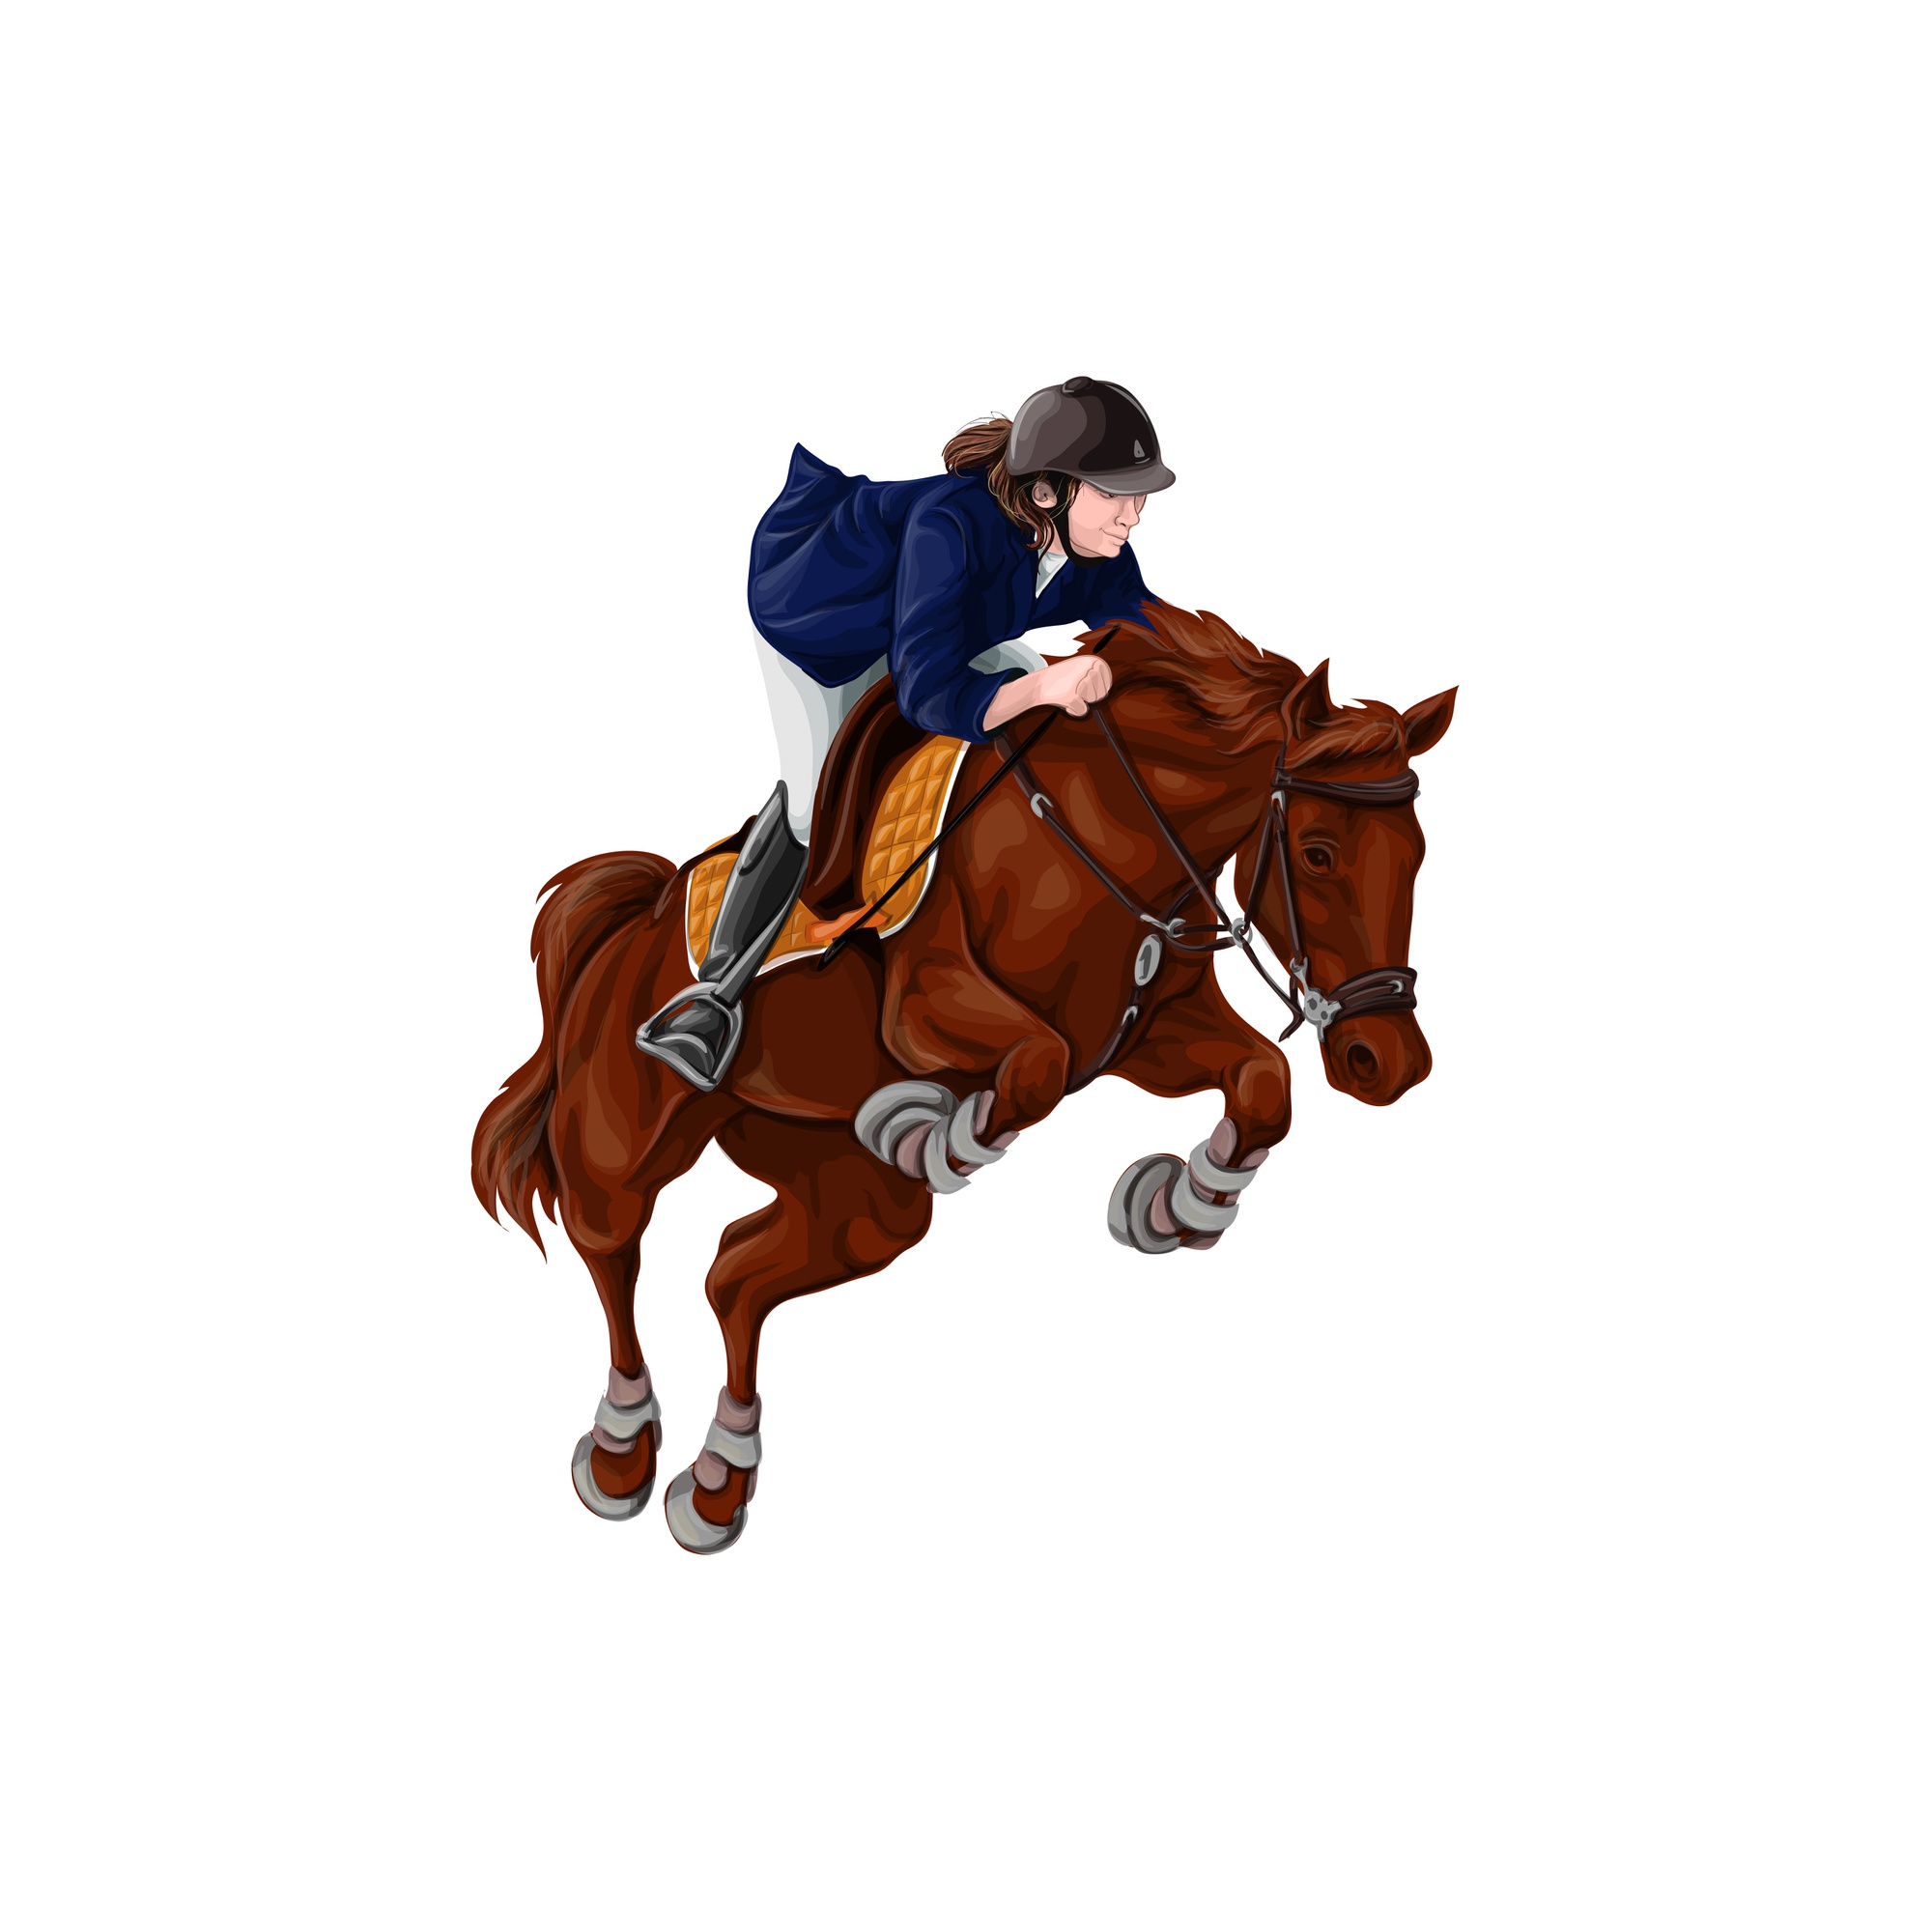 Woman, Girl riding horses Vector Illustration, isolated.